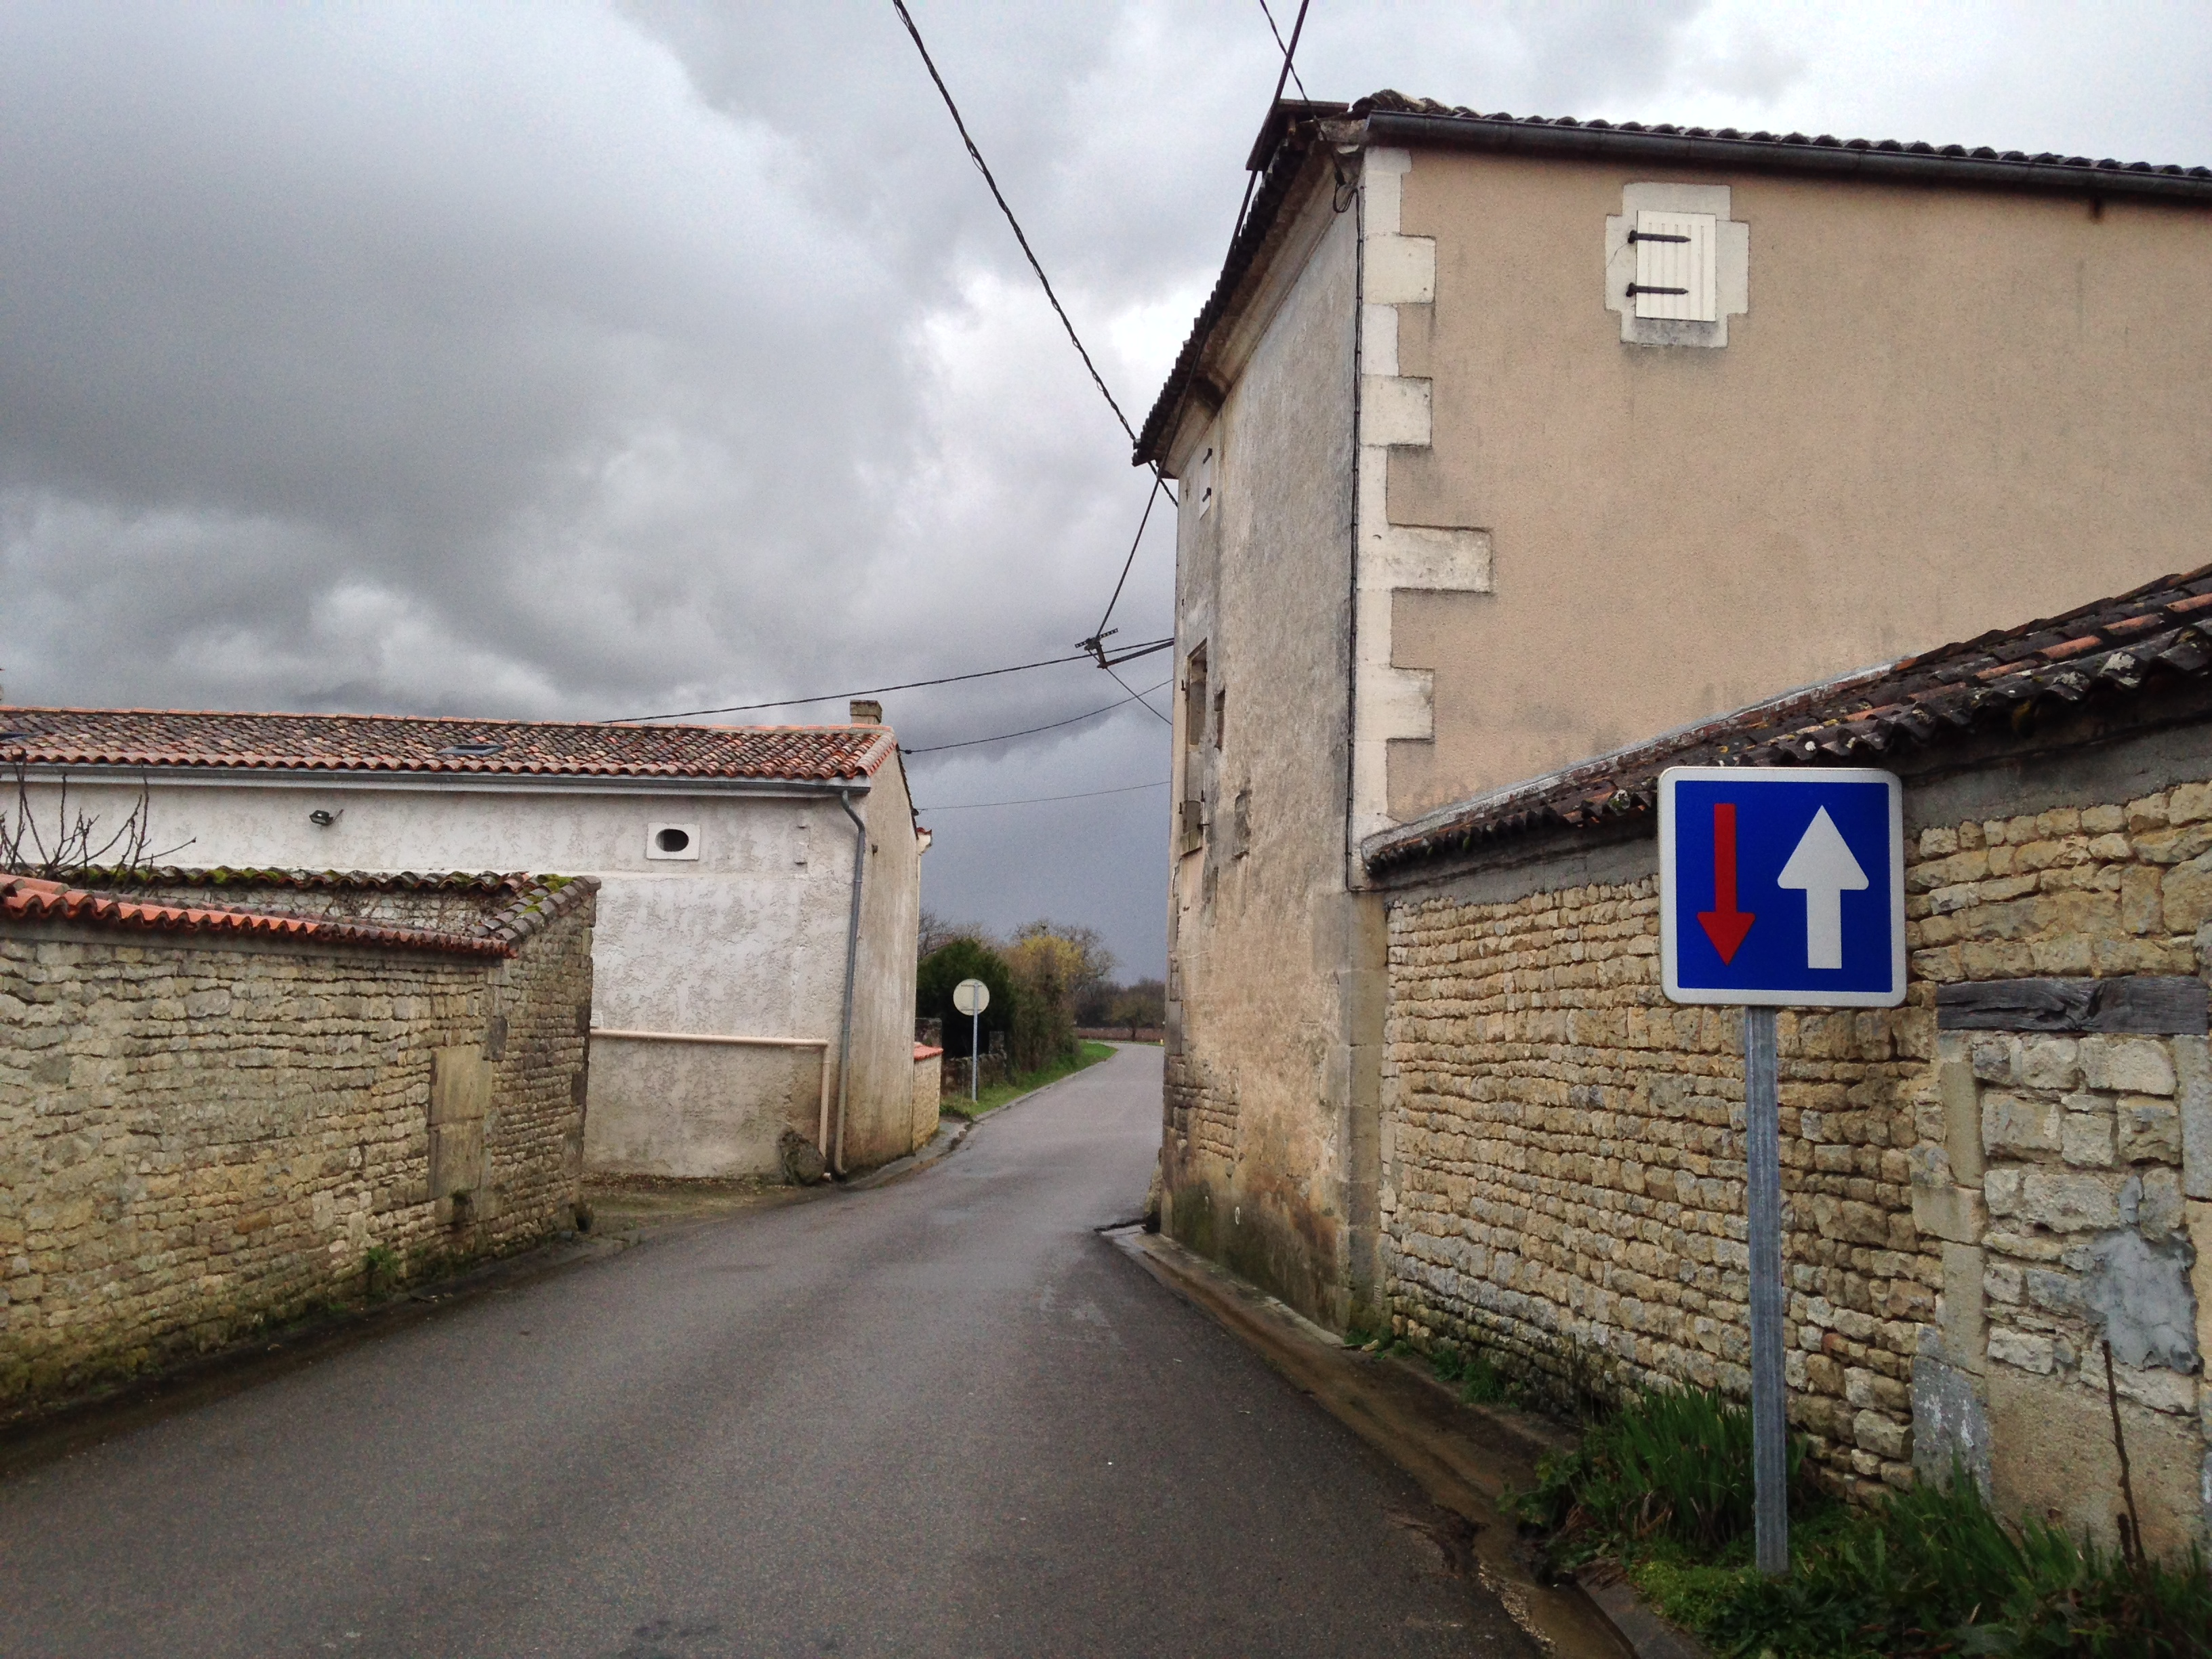 Why are there more strict speed restrictions on the roads in France than other countries in Europe?